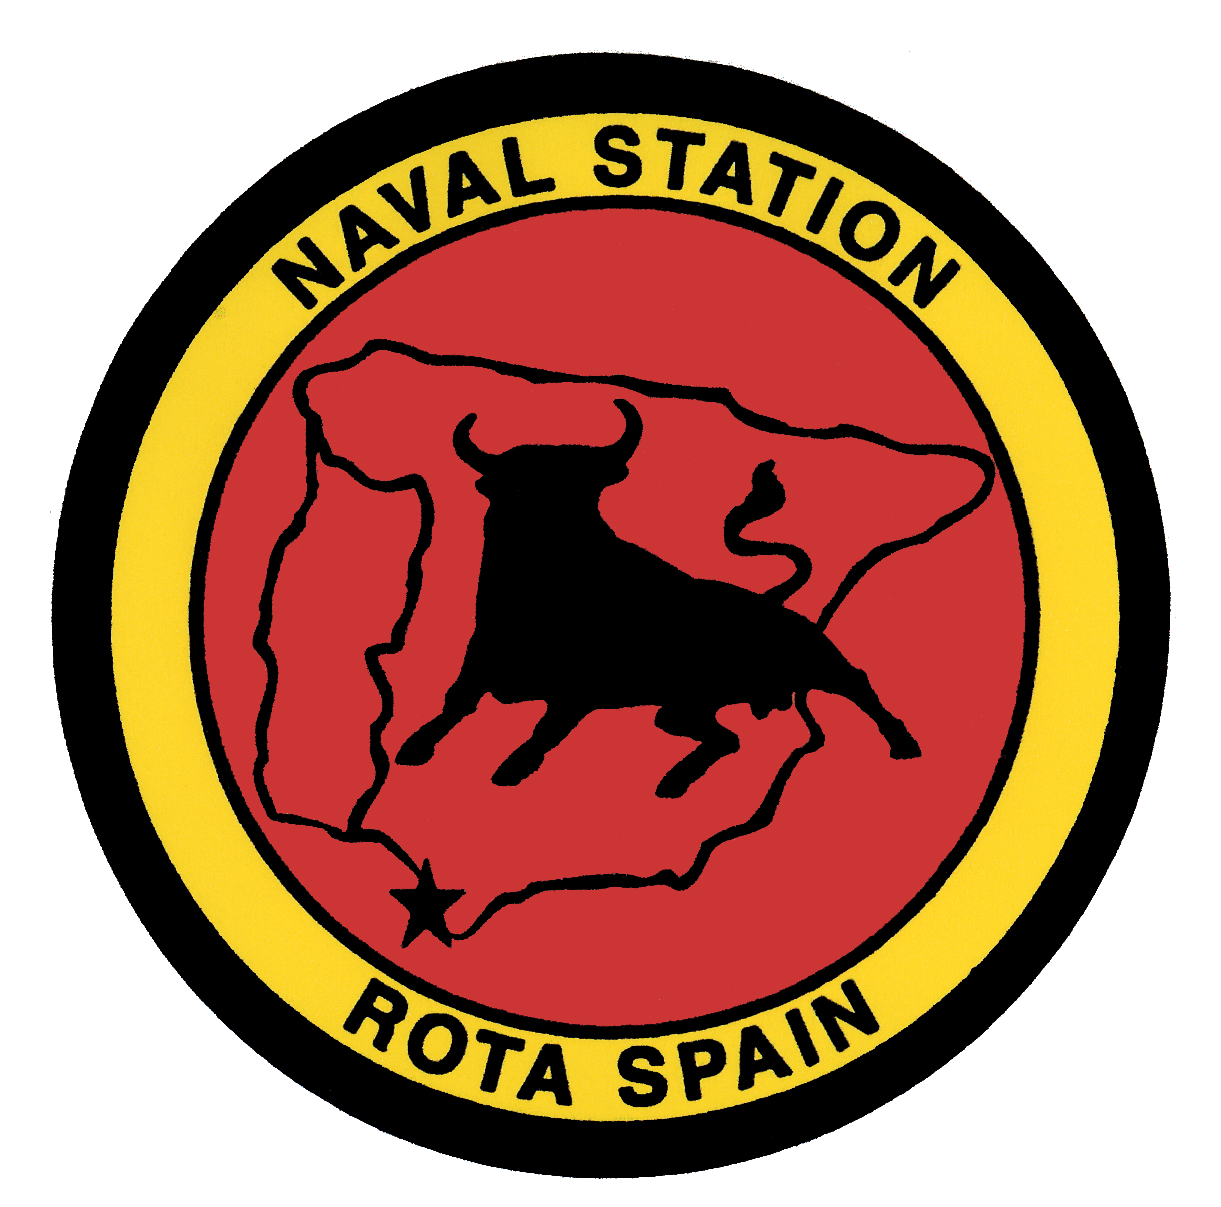 Naval Station Rota - Wikipedia